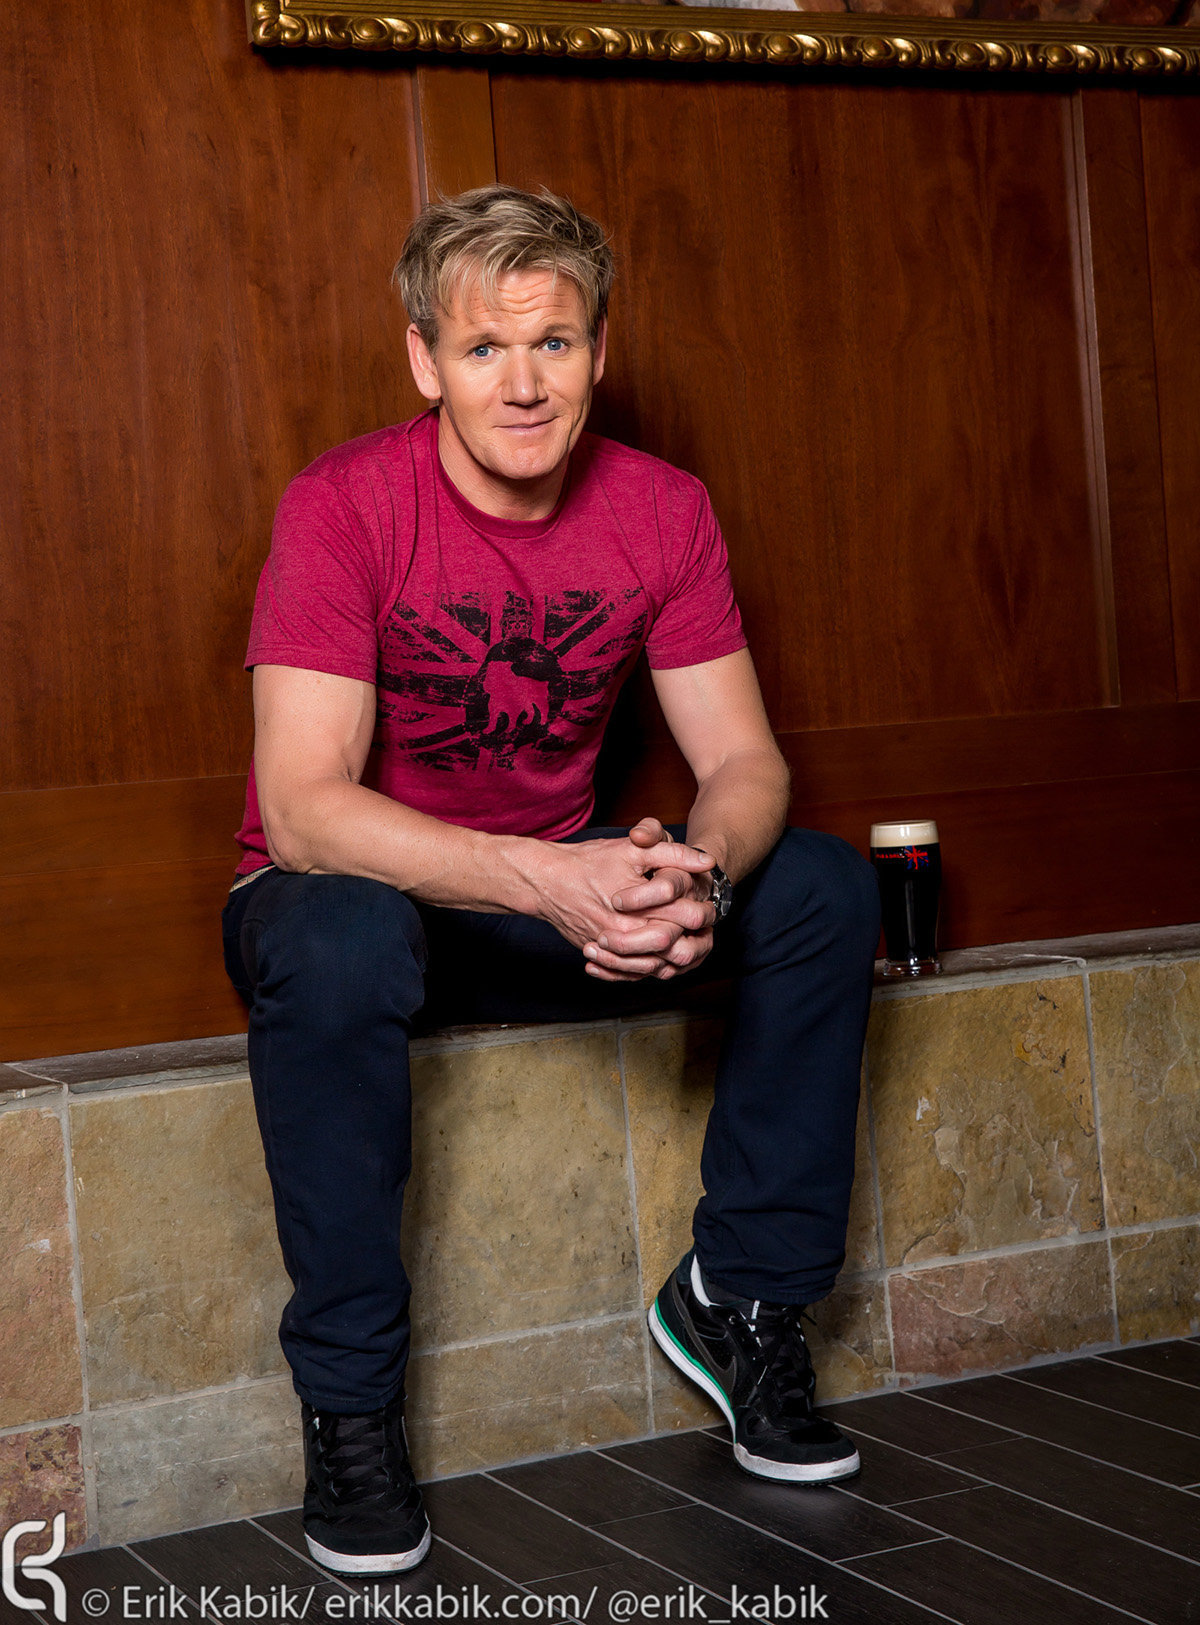 12_17_12_gordon_ramsay_kabik-233-Edit.jpg